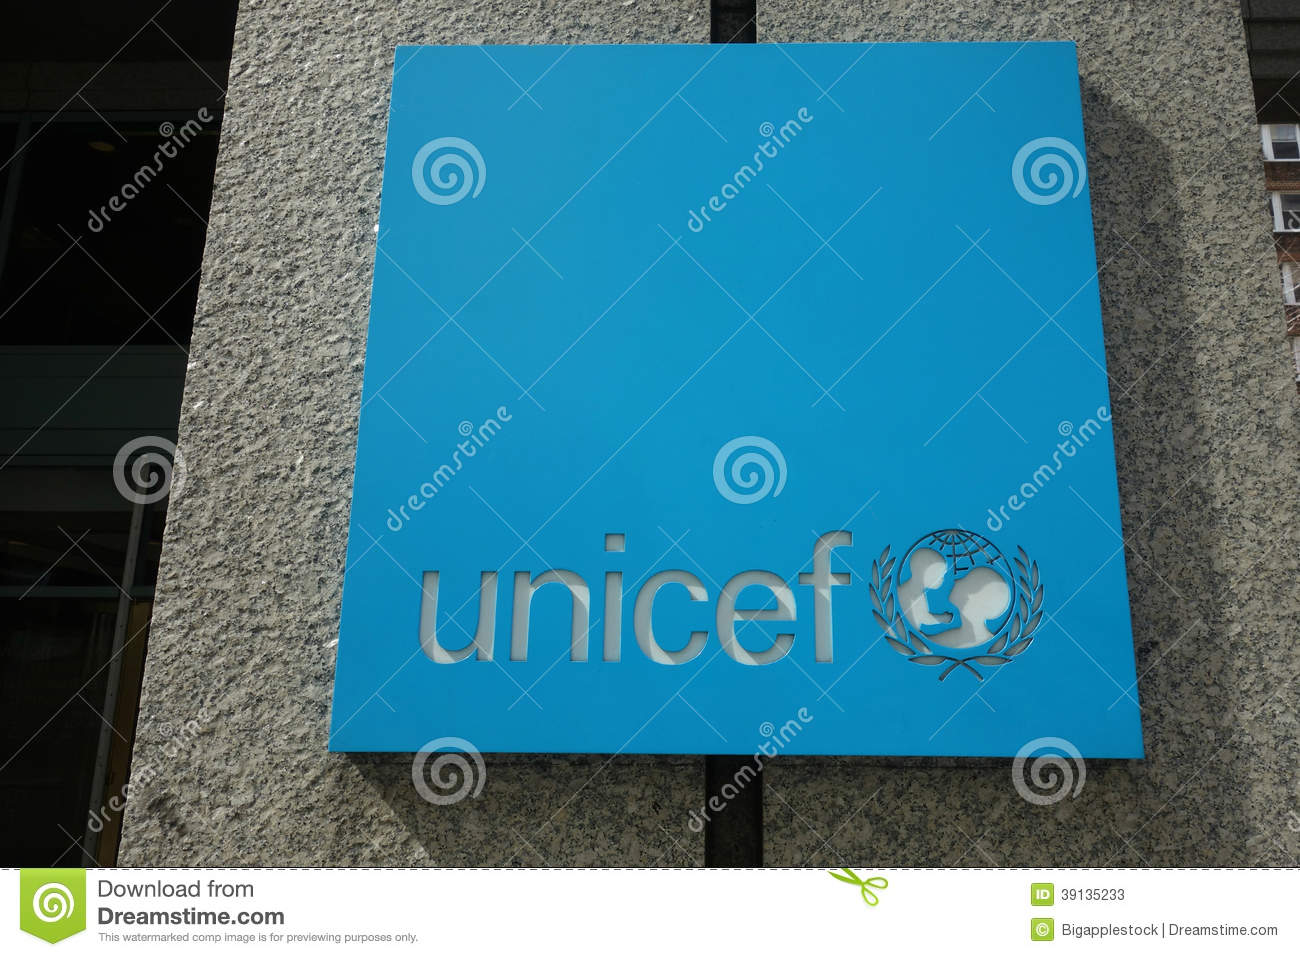 unicef managing public relations Developed, coordinated and implementing the child poverty and equity campaign with infographics, billboards, videos and public service announcements, influencer outreach.